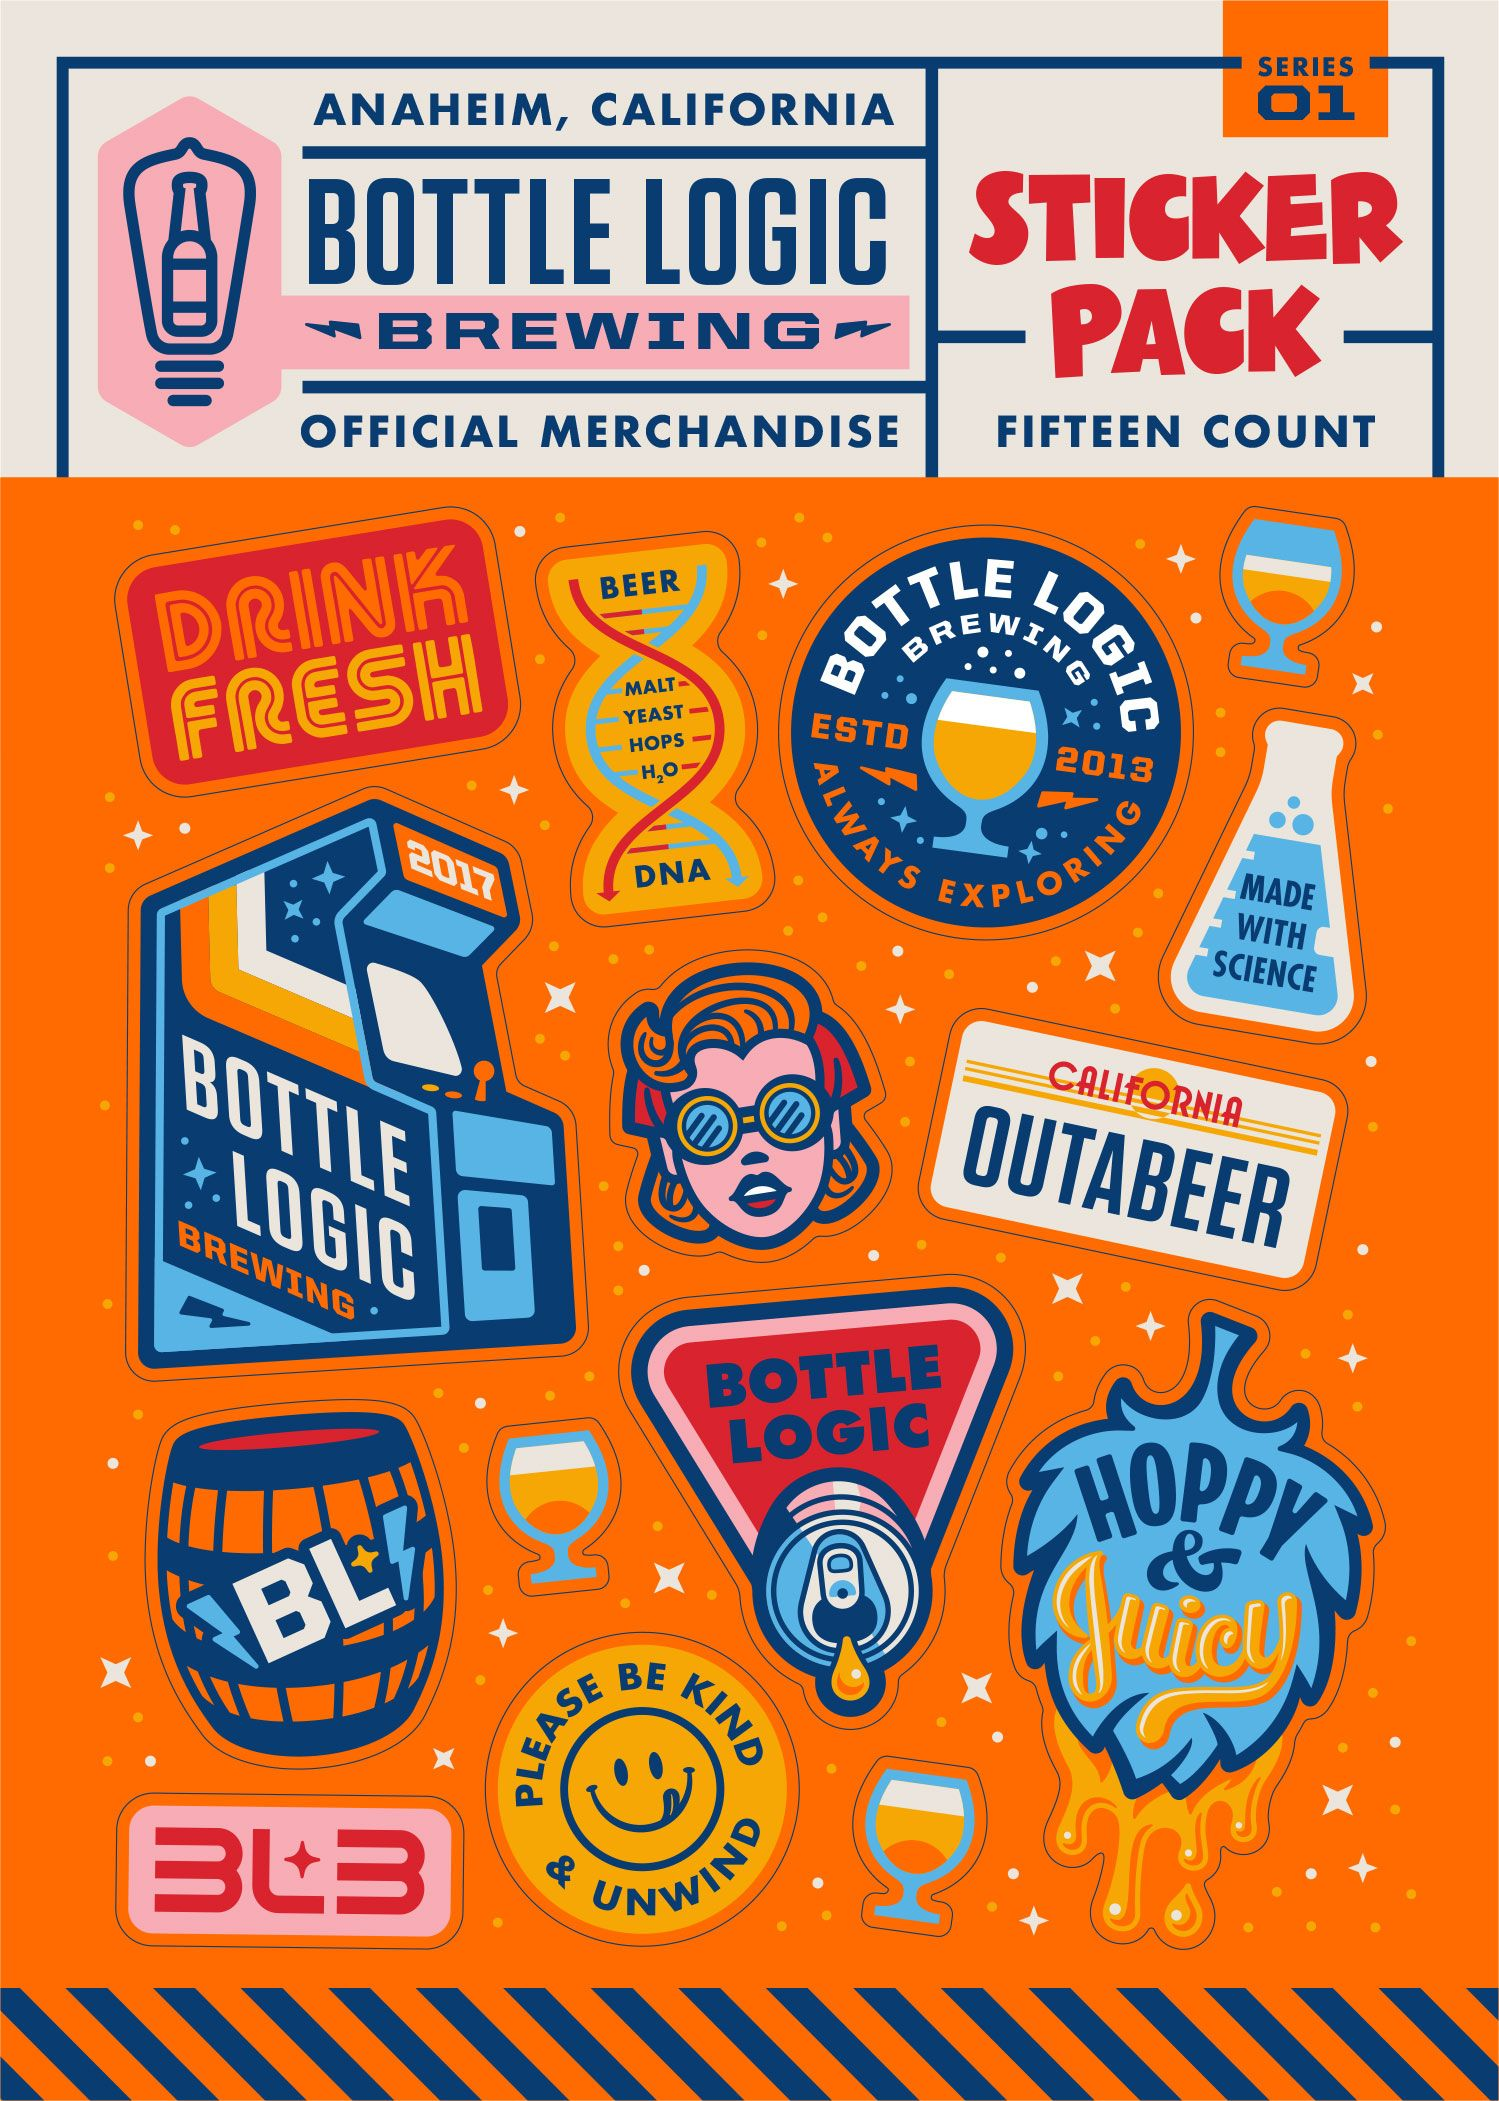 Sticker pack for bottle logic brewing loving the oranges and very otherwise pop y colours